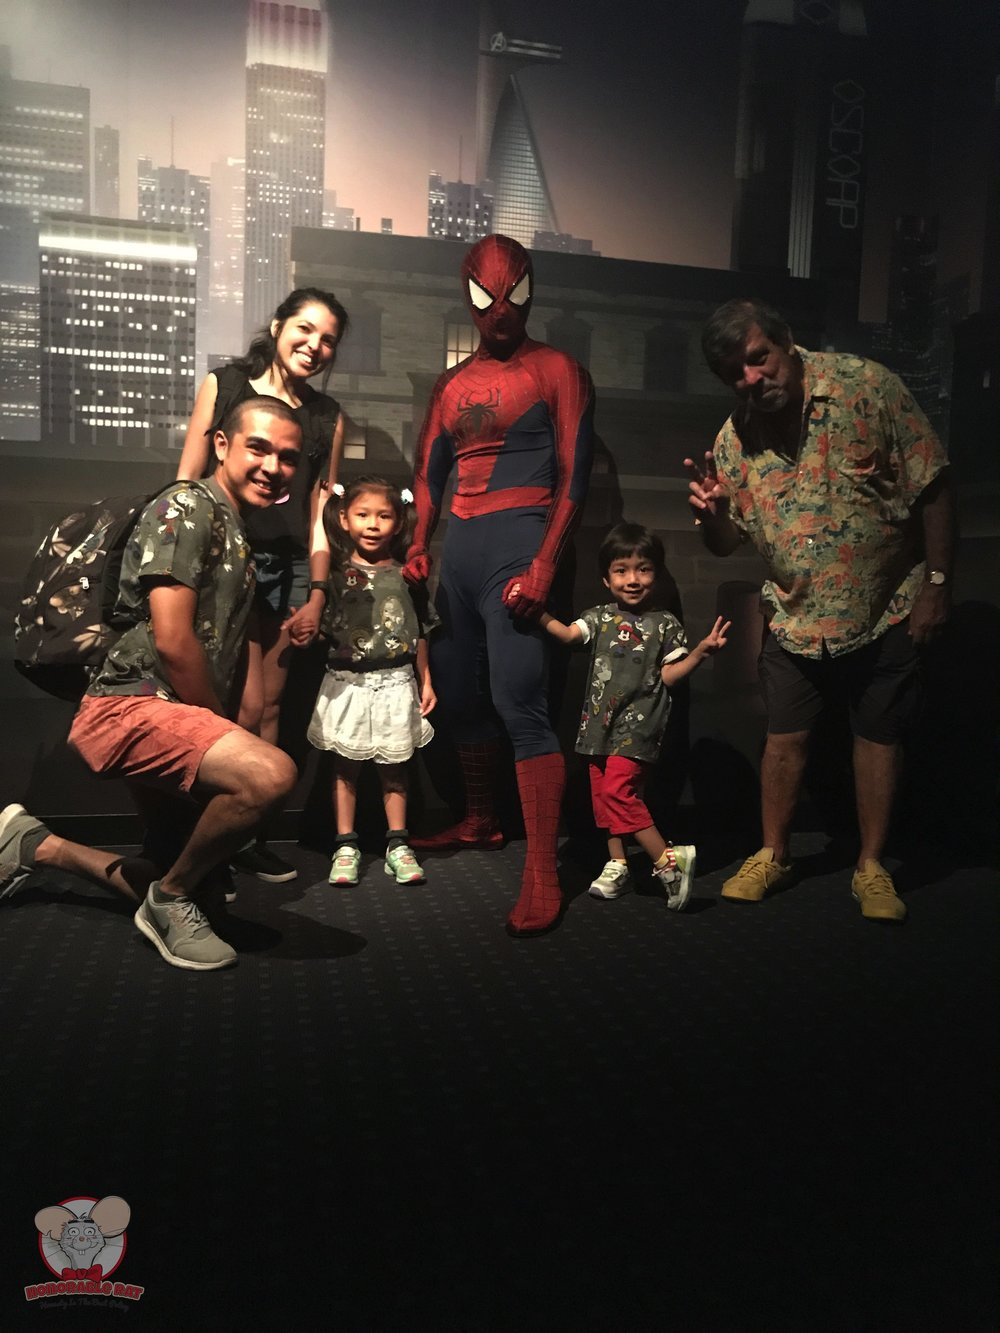 Meeting Spiderman